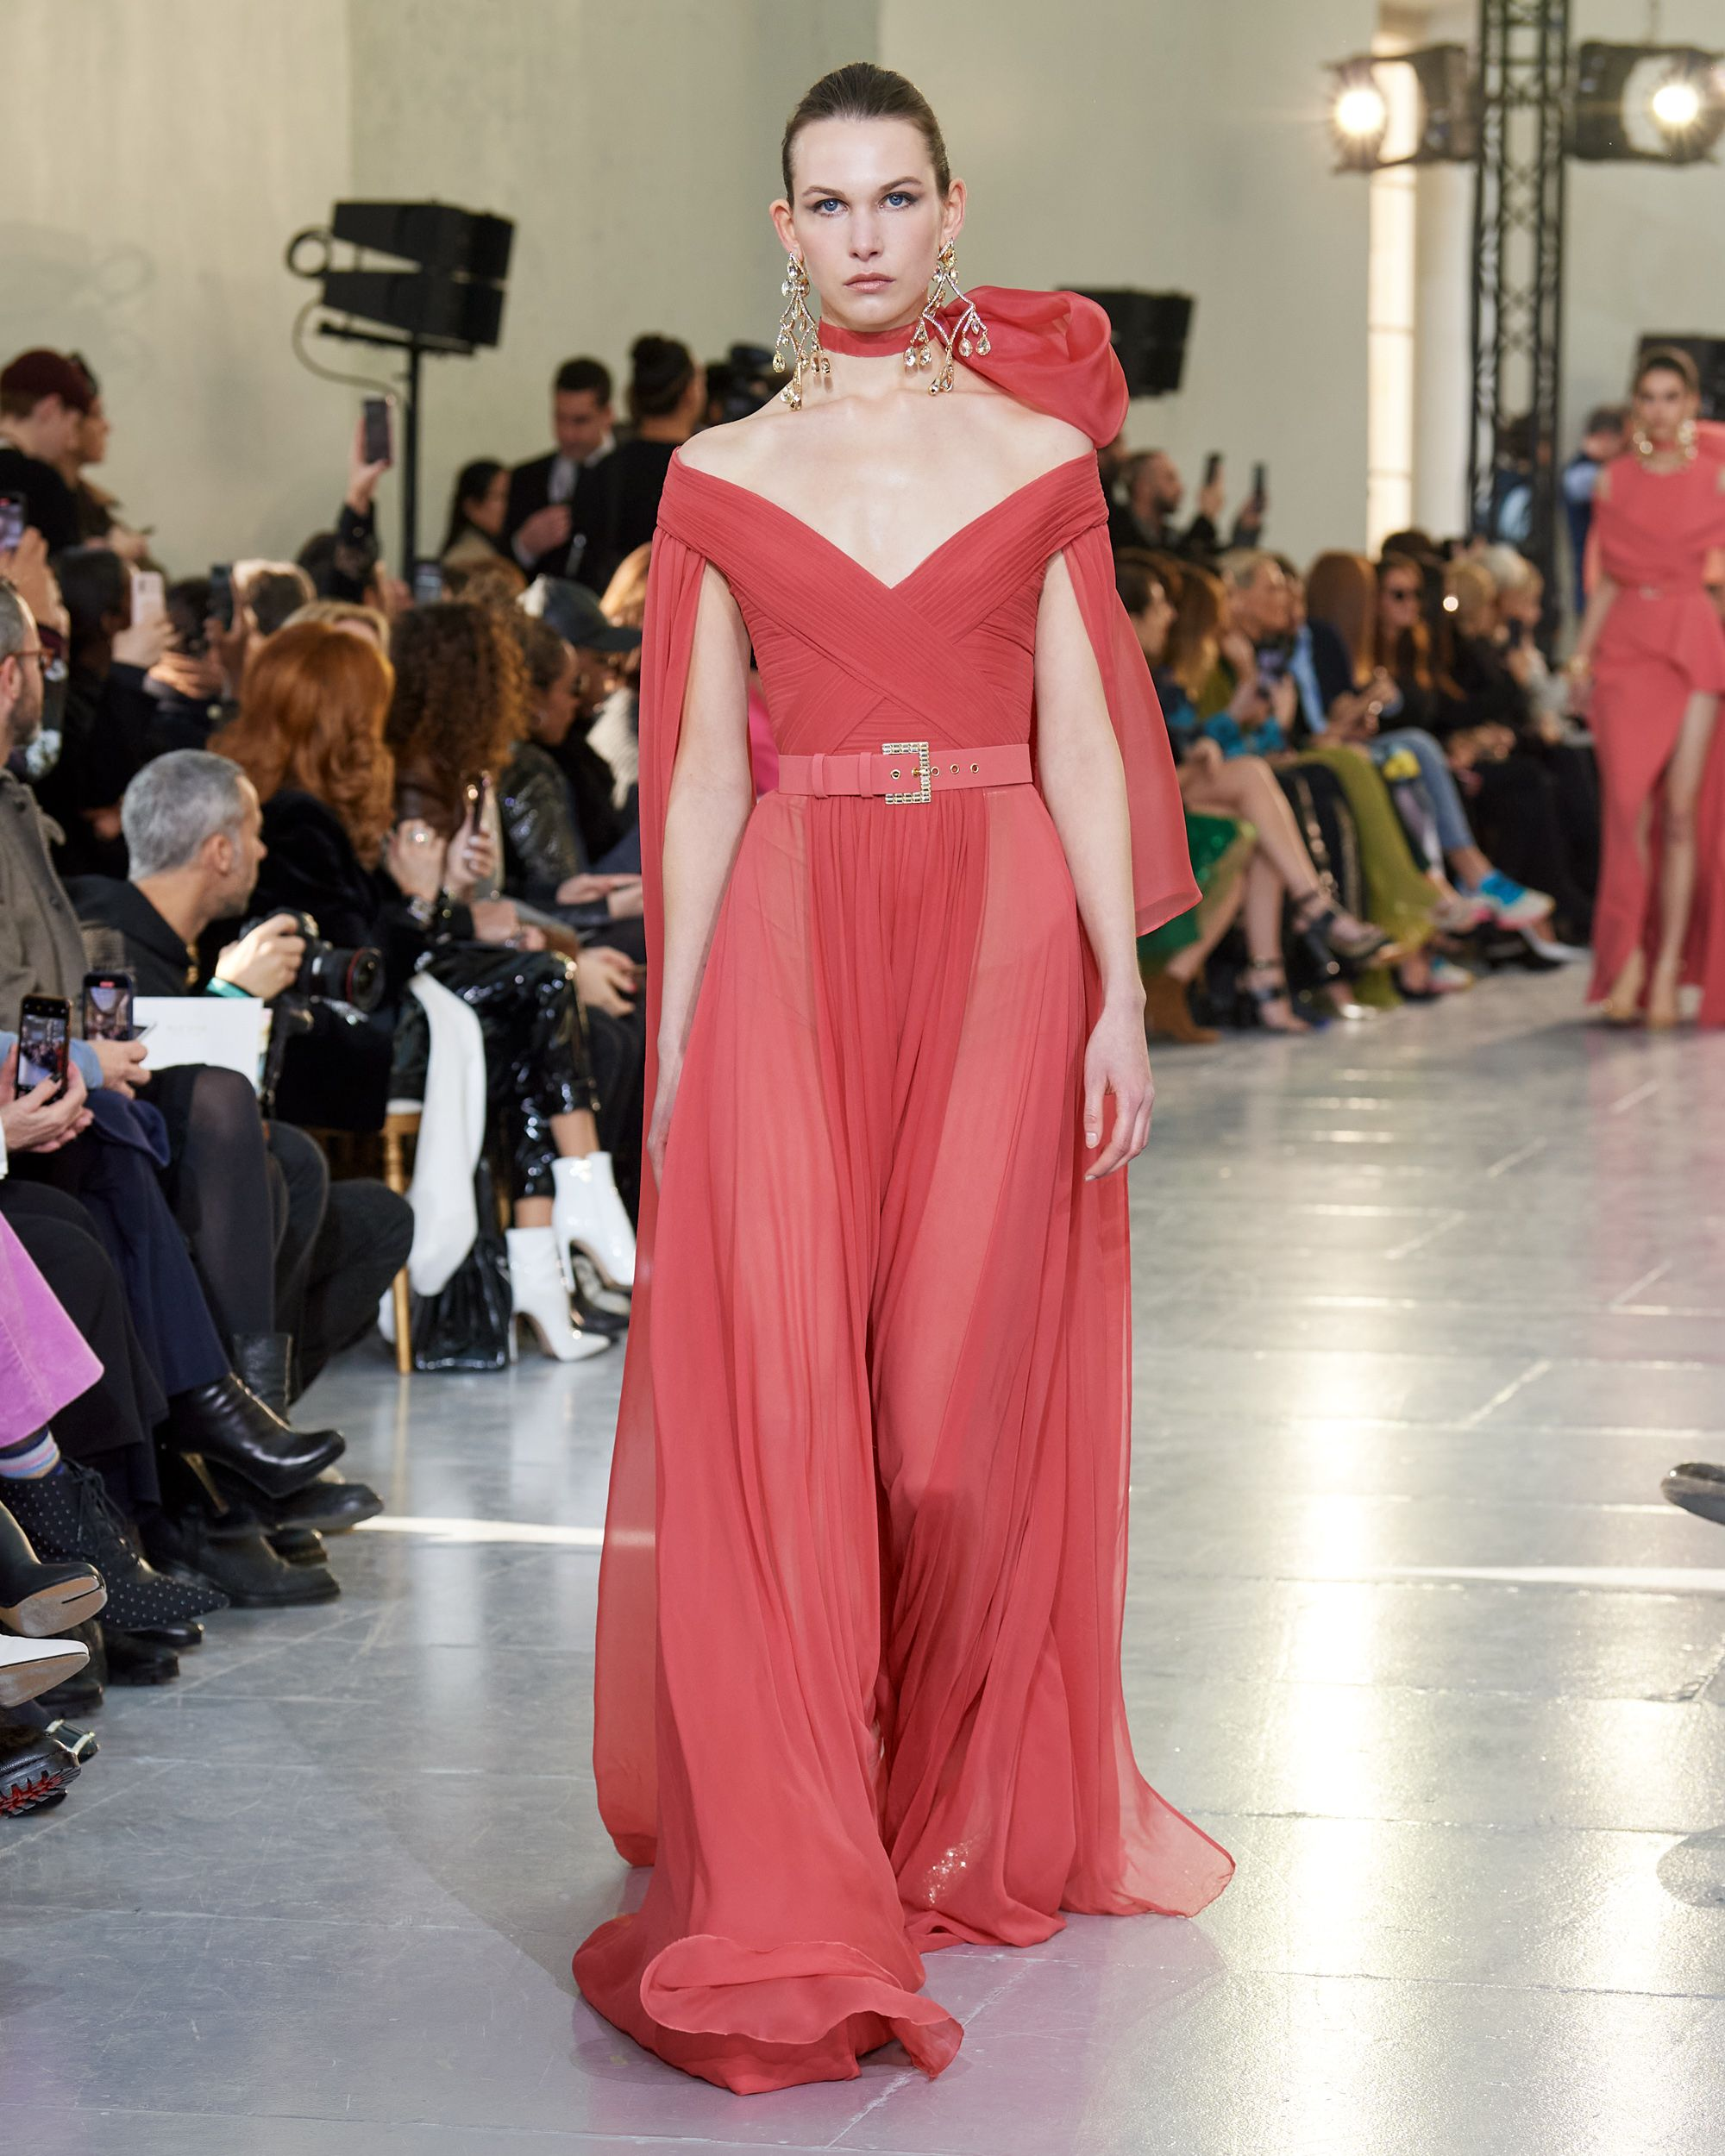 Elie Saab Haute Couture Spring Summer 2020 In 2020 Top Design Fashion Vintage Inspired Dresses Fashion